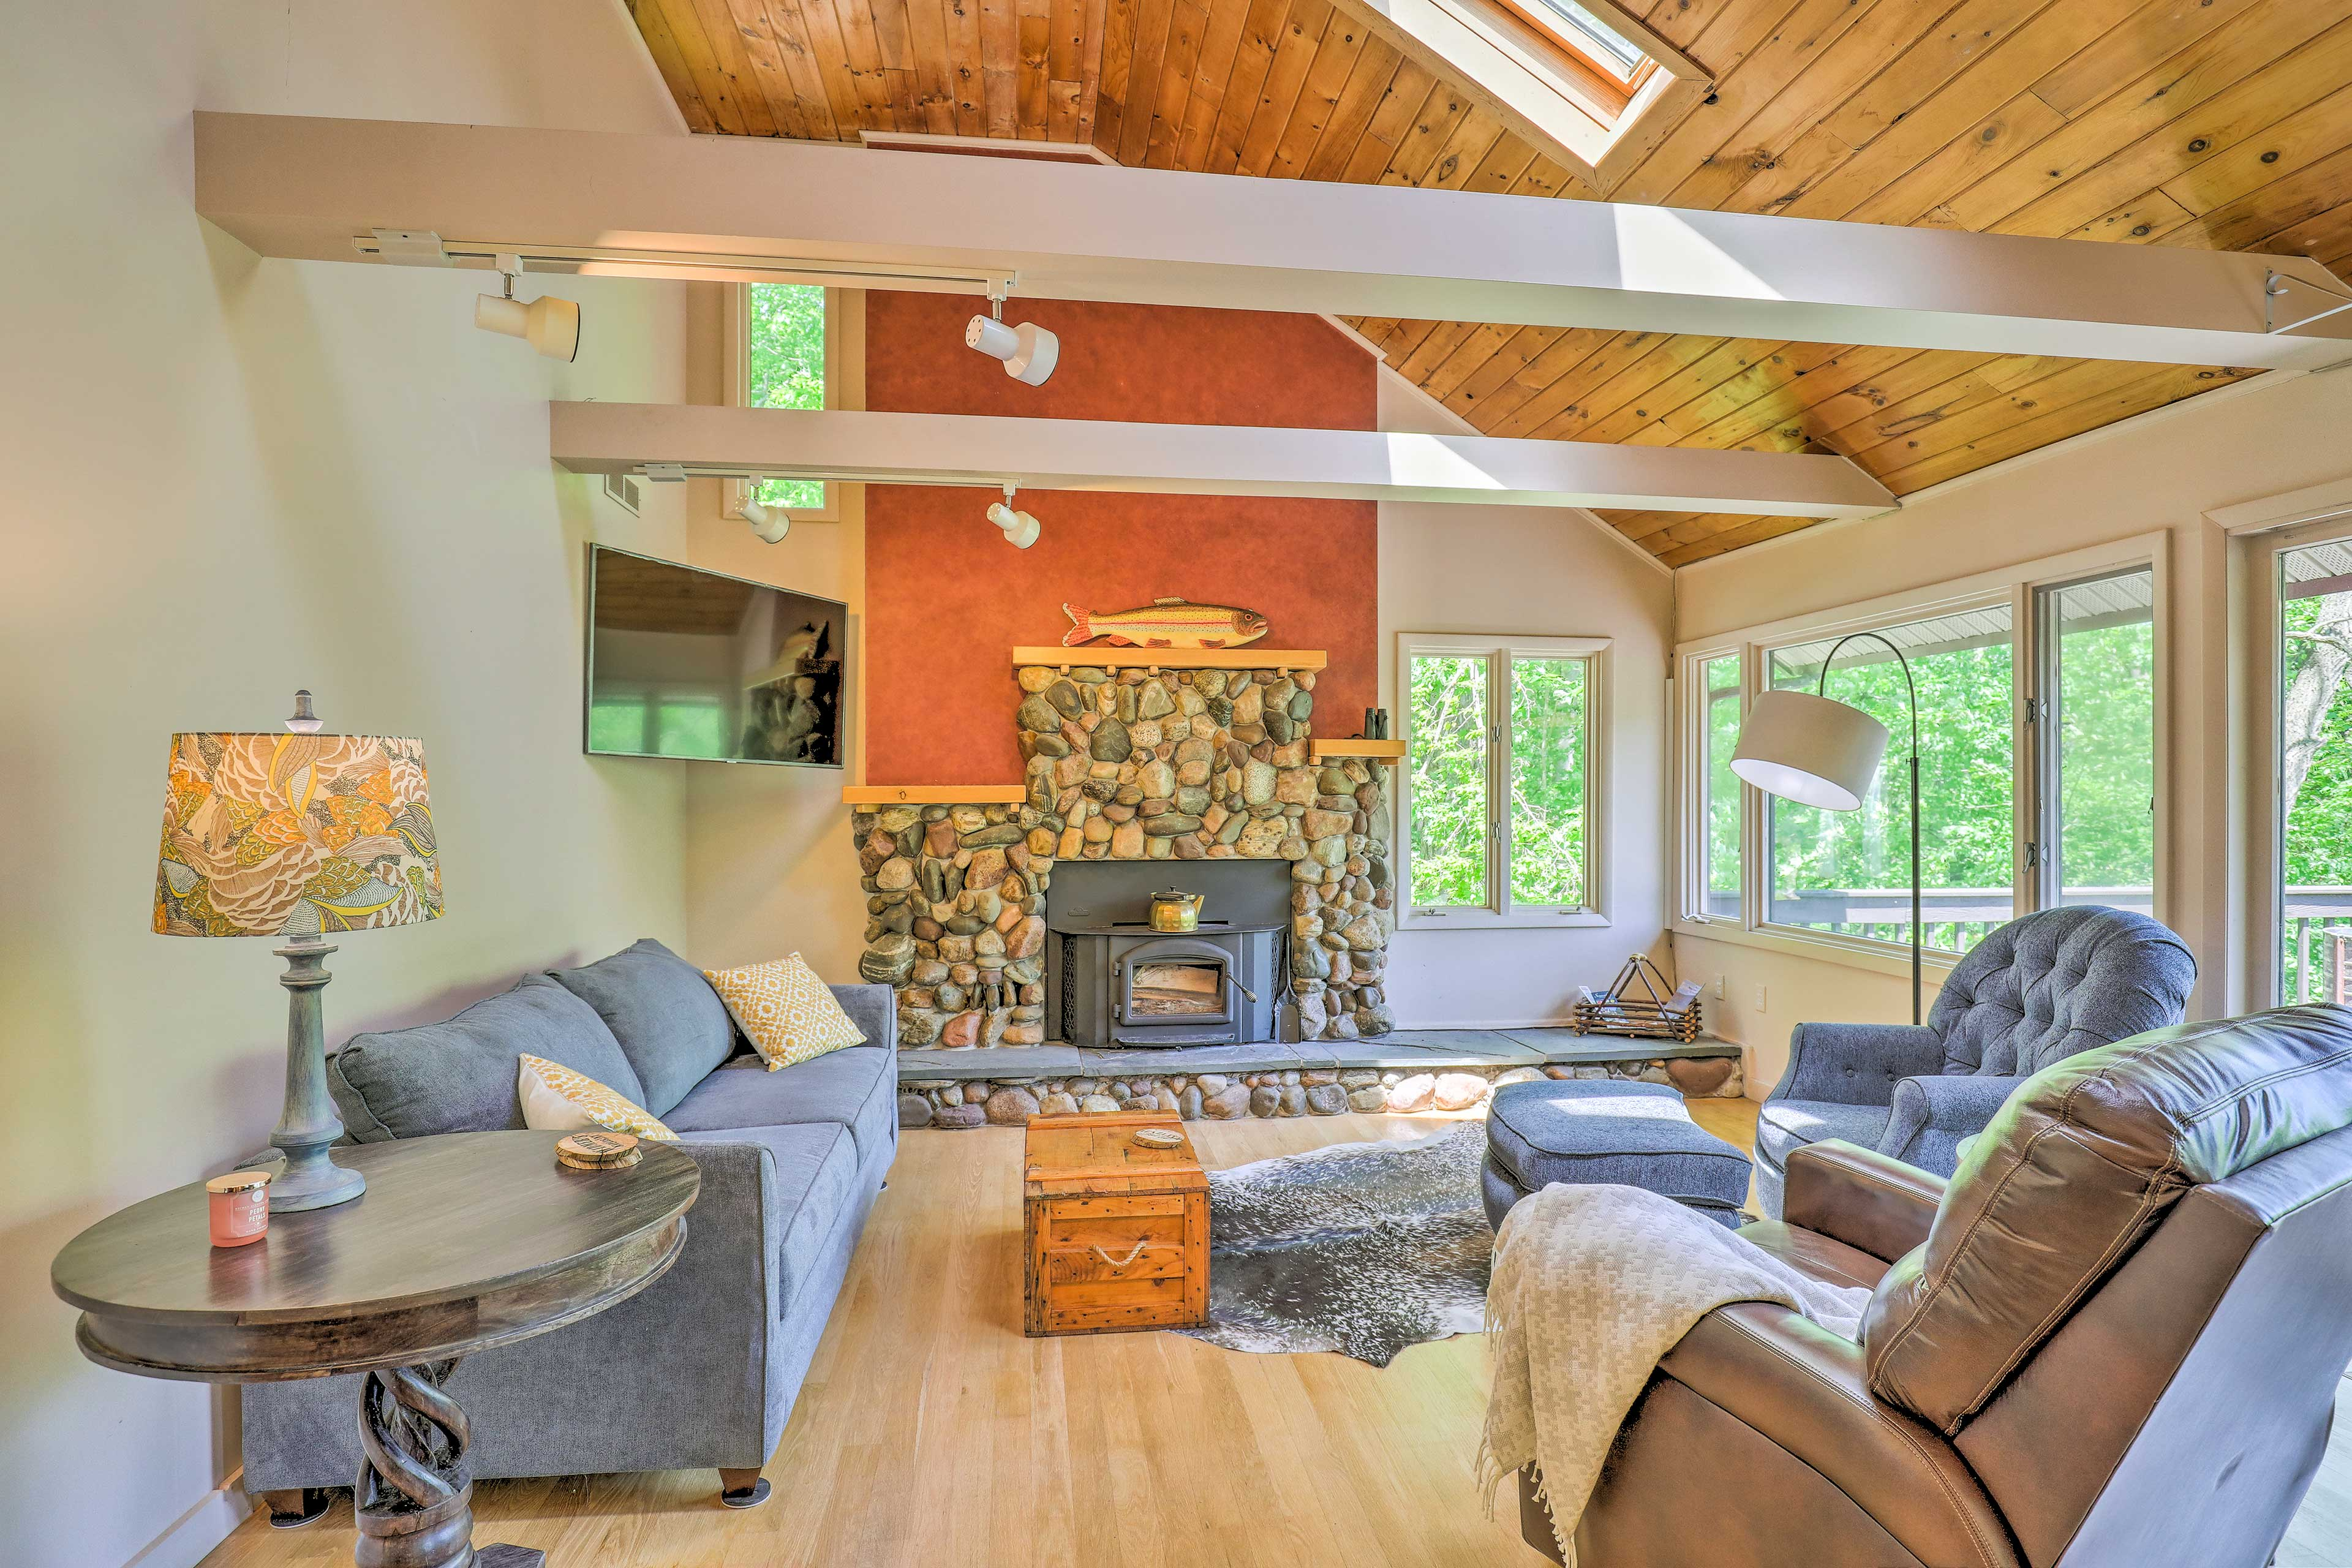 Cathedral ceilings and a wood-burning fireplace beckon 6 guests to unwind here.